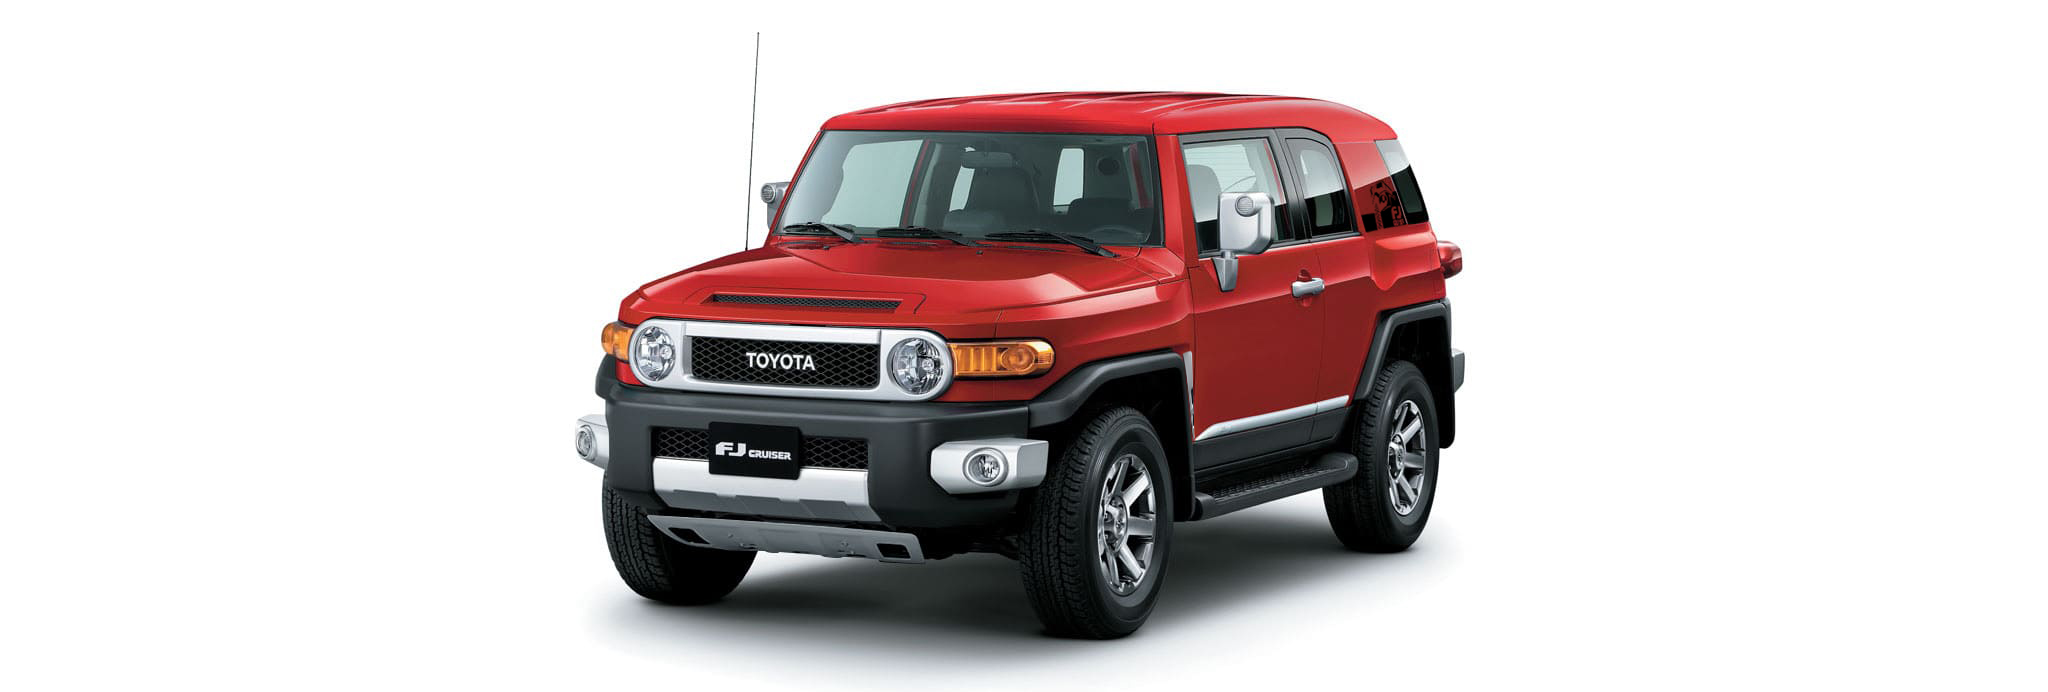 Toyota FJ-Cruise SUV Red 2018